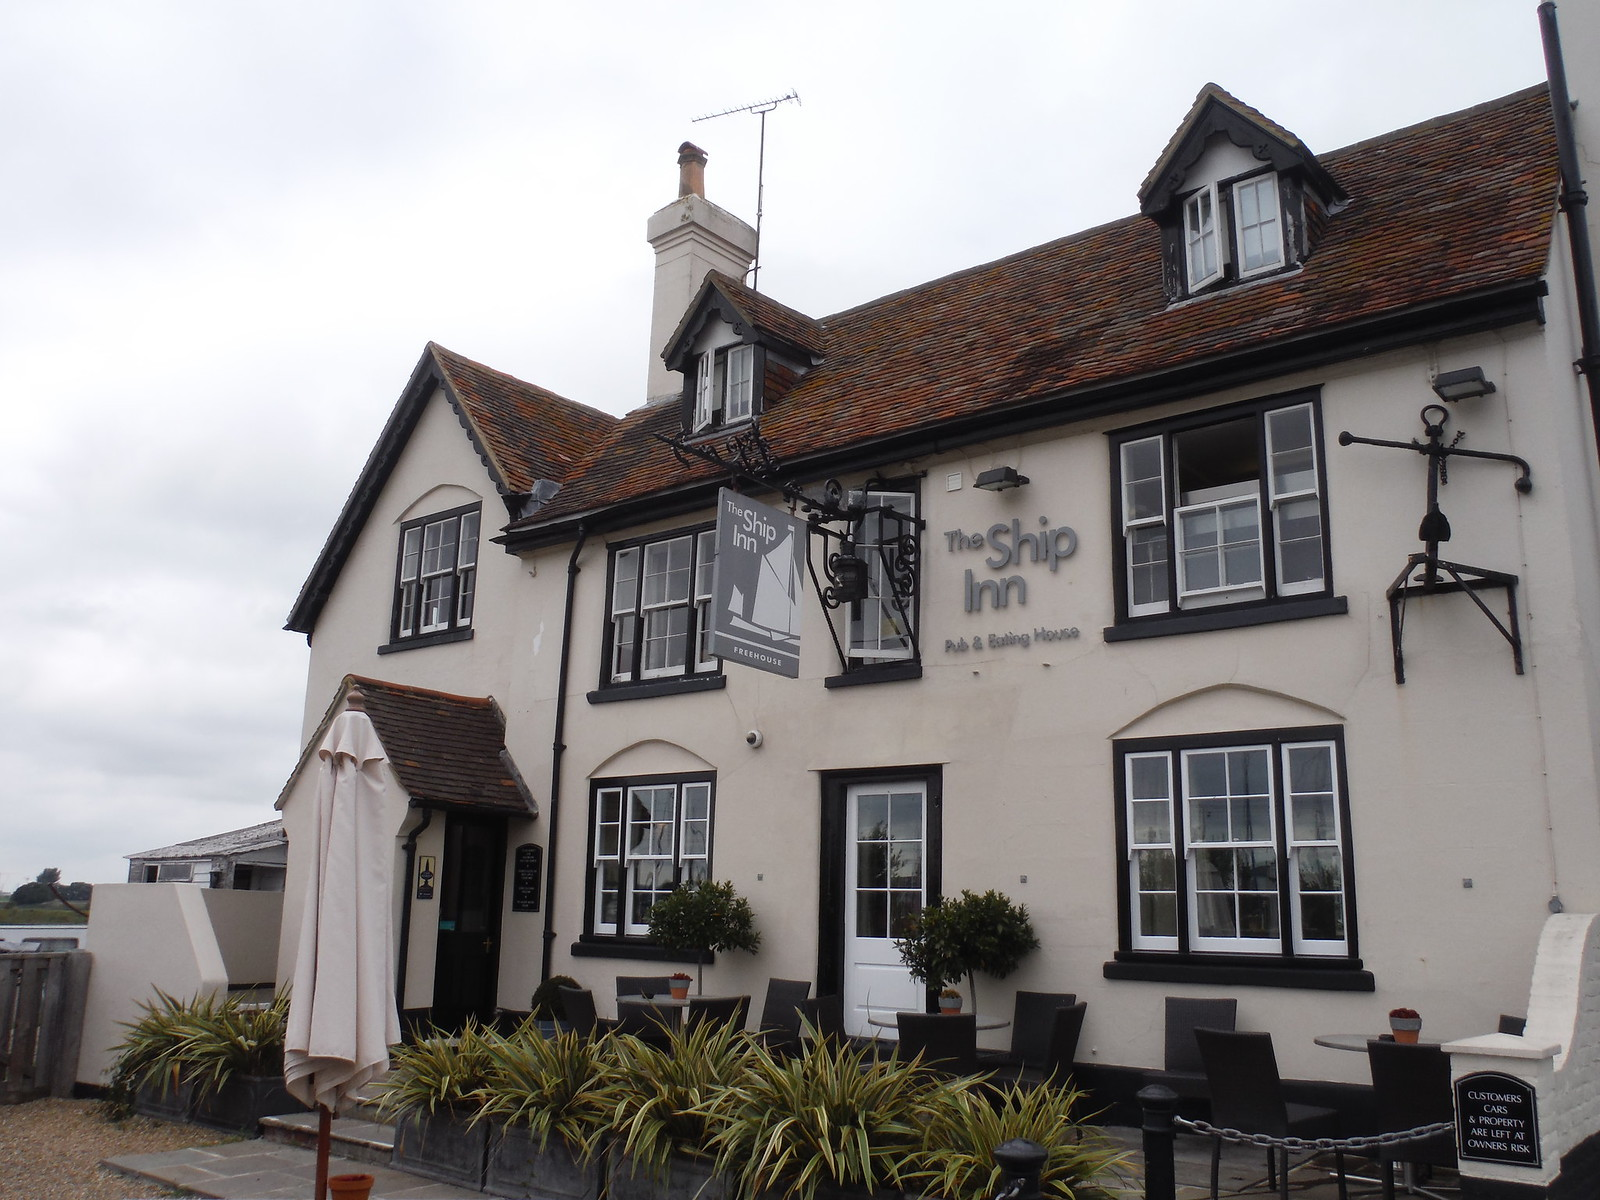 The Ship Inn at Conyer SWC Walk 299 - Teynham to Faversham